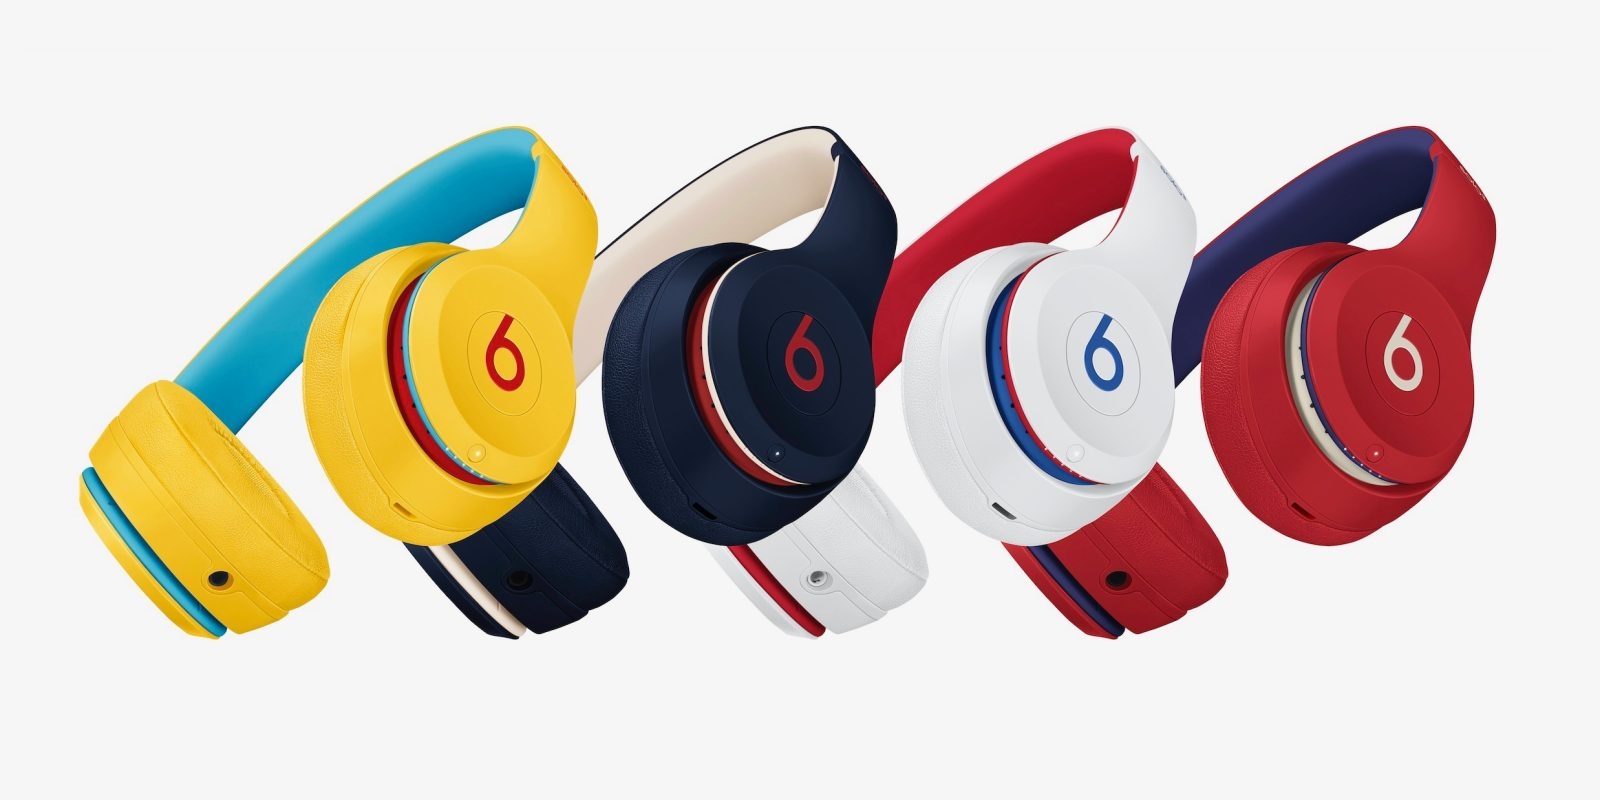 Beats Debuts Punchy Solo 3 Wireless Club Collection In Collaboration With Fashion And Beauty Show Nayva 9to5mac